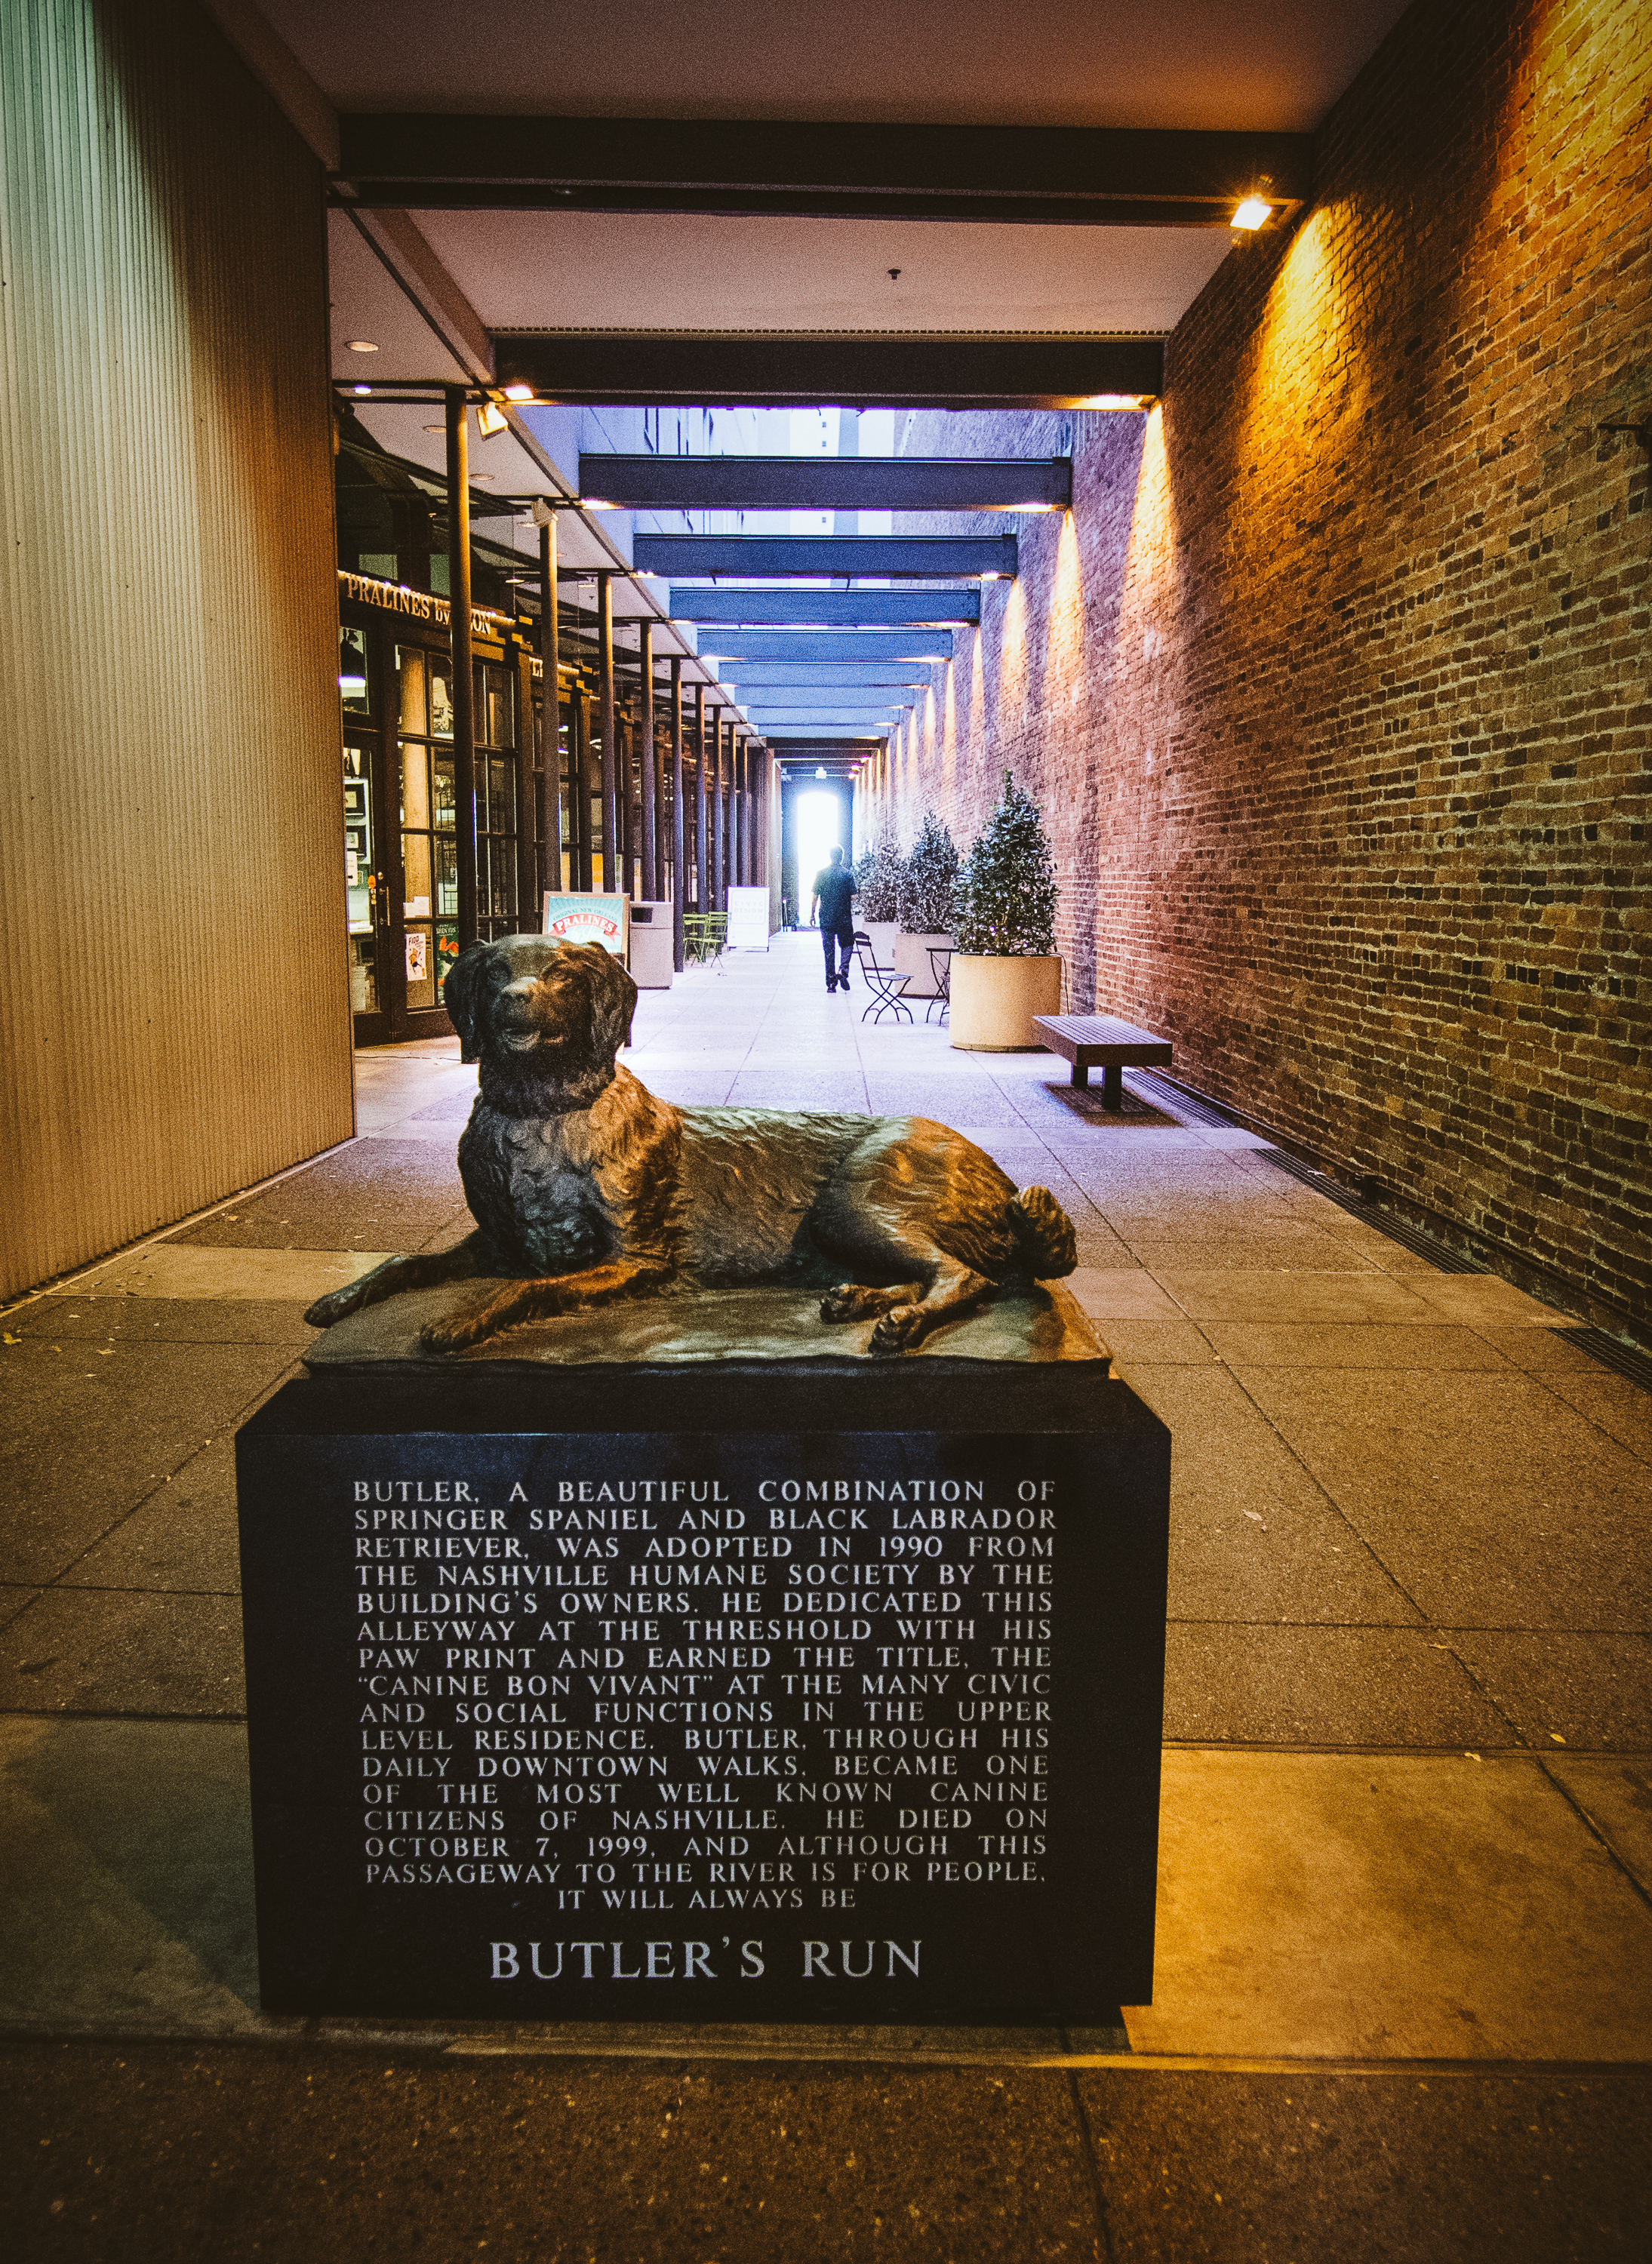 Butler's Run is a passageway in downtown Nashville named after a dog named Butler in order to make sure that, no matter the development, a path to the river would always exist for people (and animals).